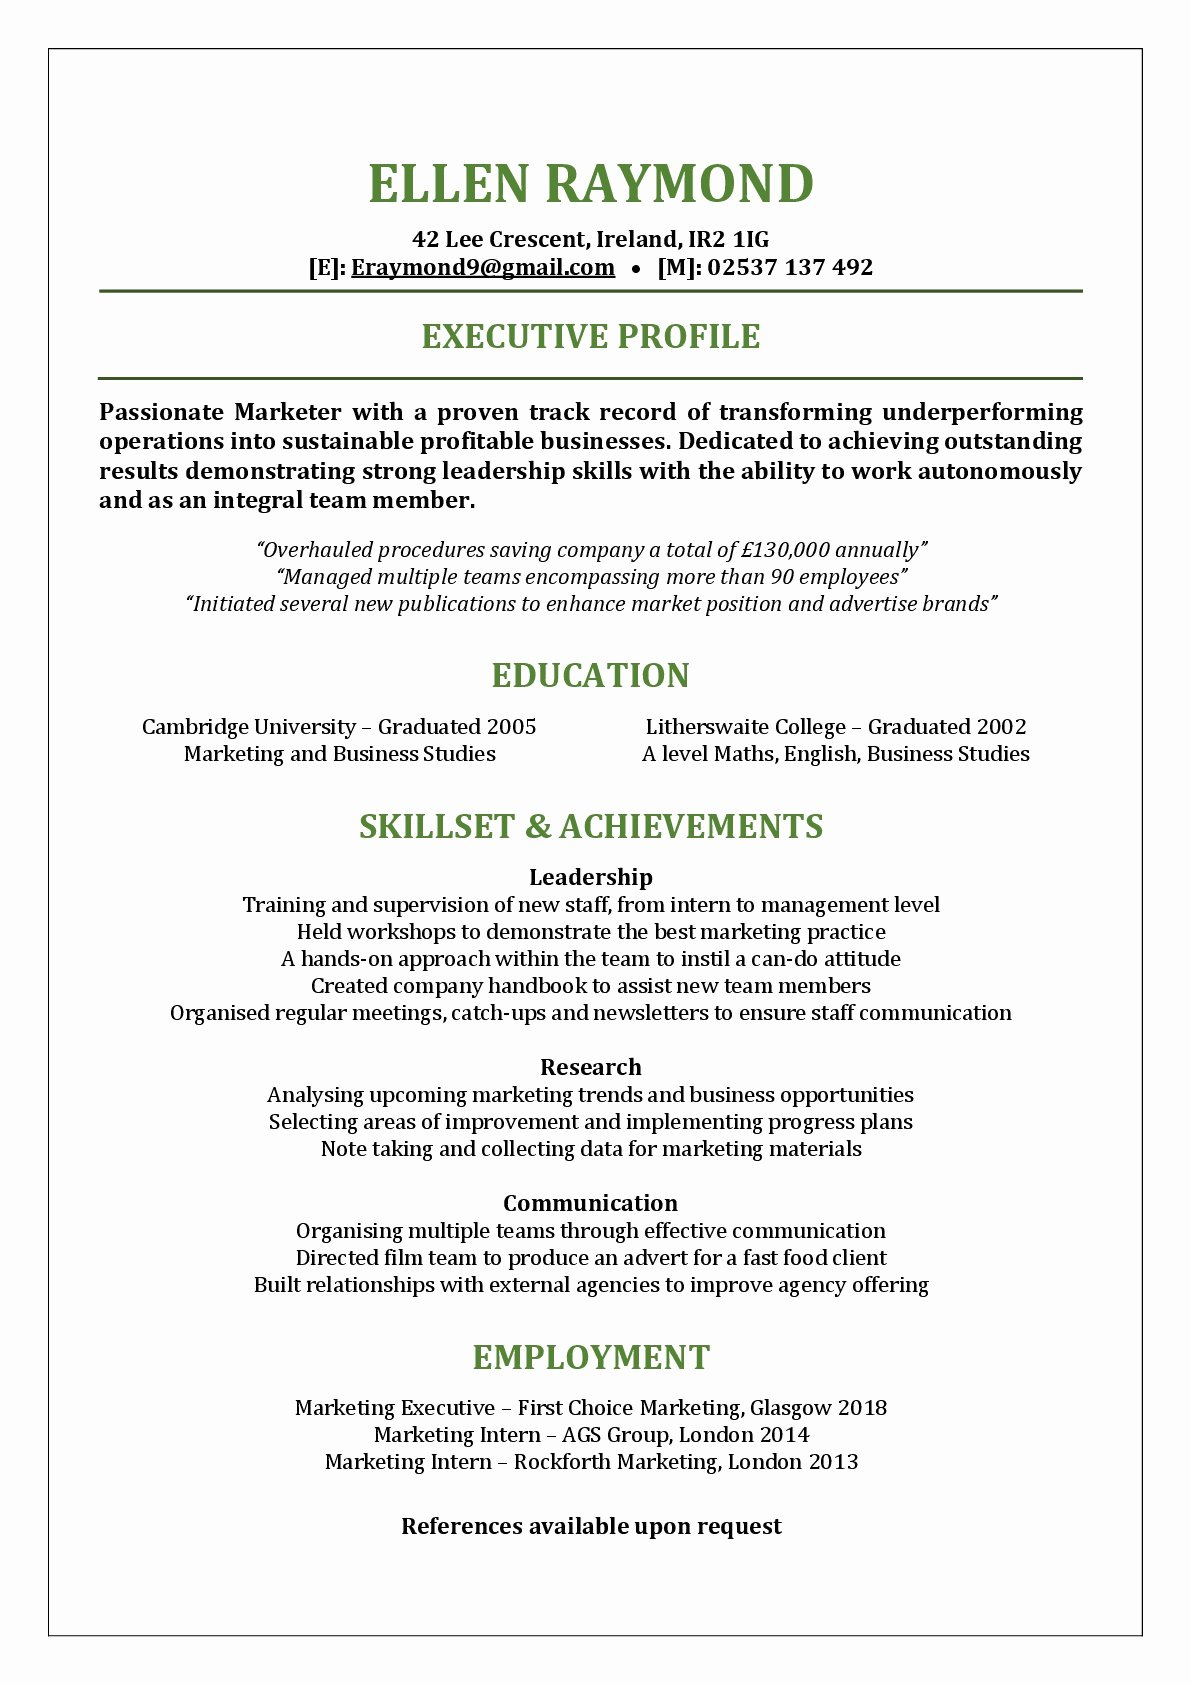 Free Functional Resume Template Inspirational Free Functional Resume Templates Free Functional Resume